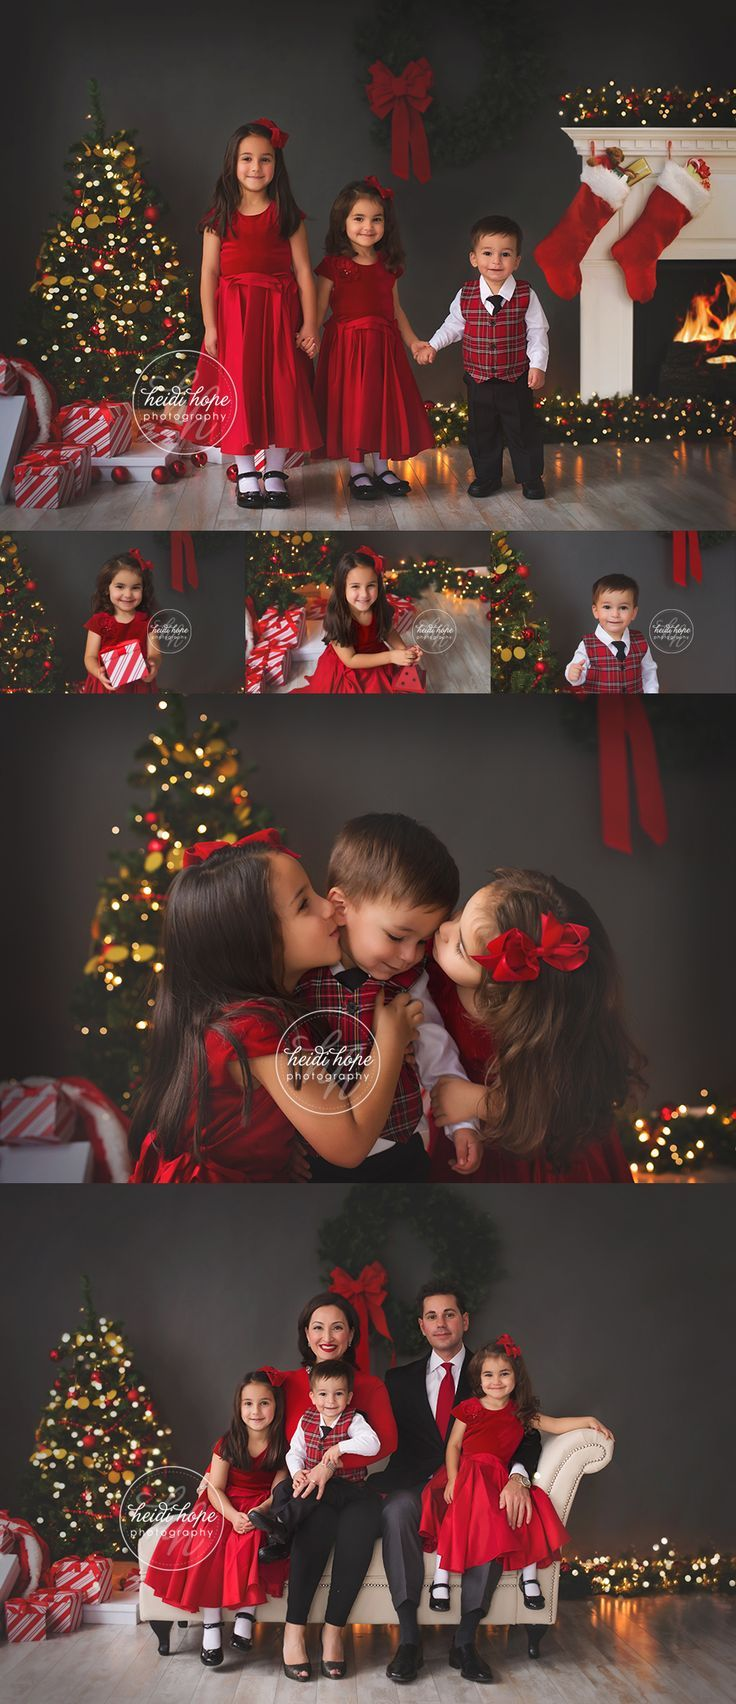 christmas portraits in the studio by rhode island family photographer #backdropsforphotographs